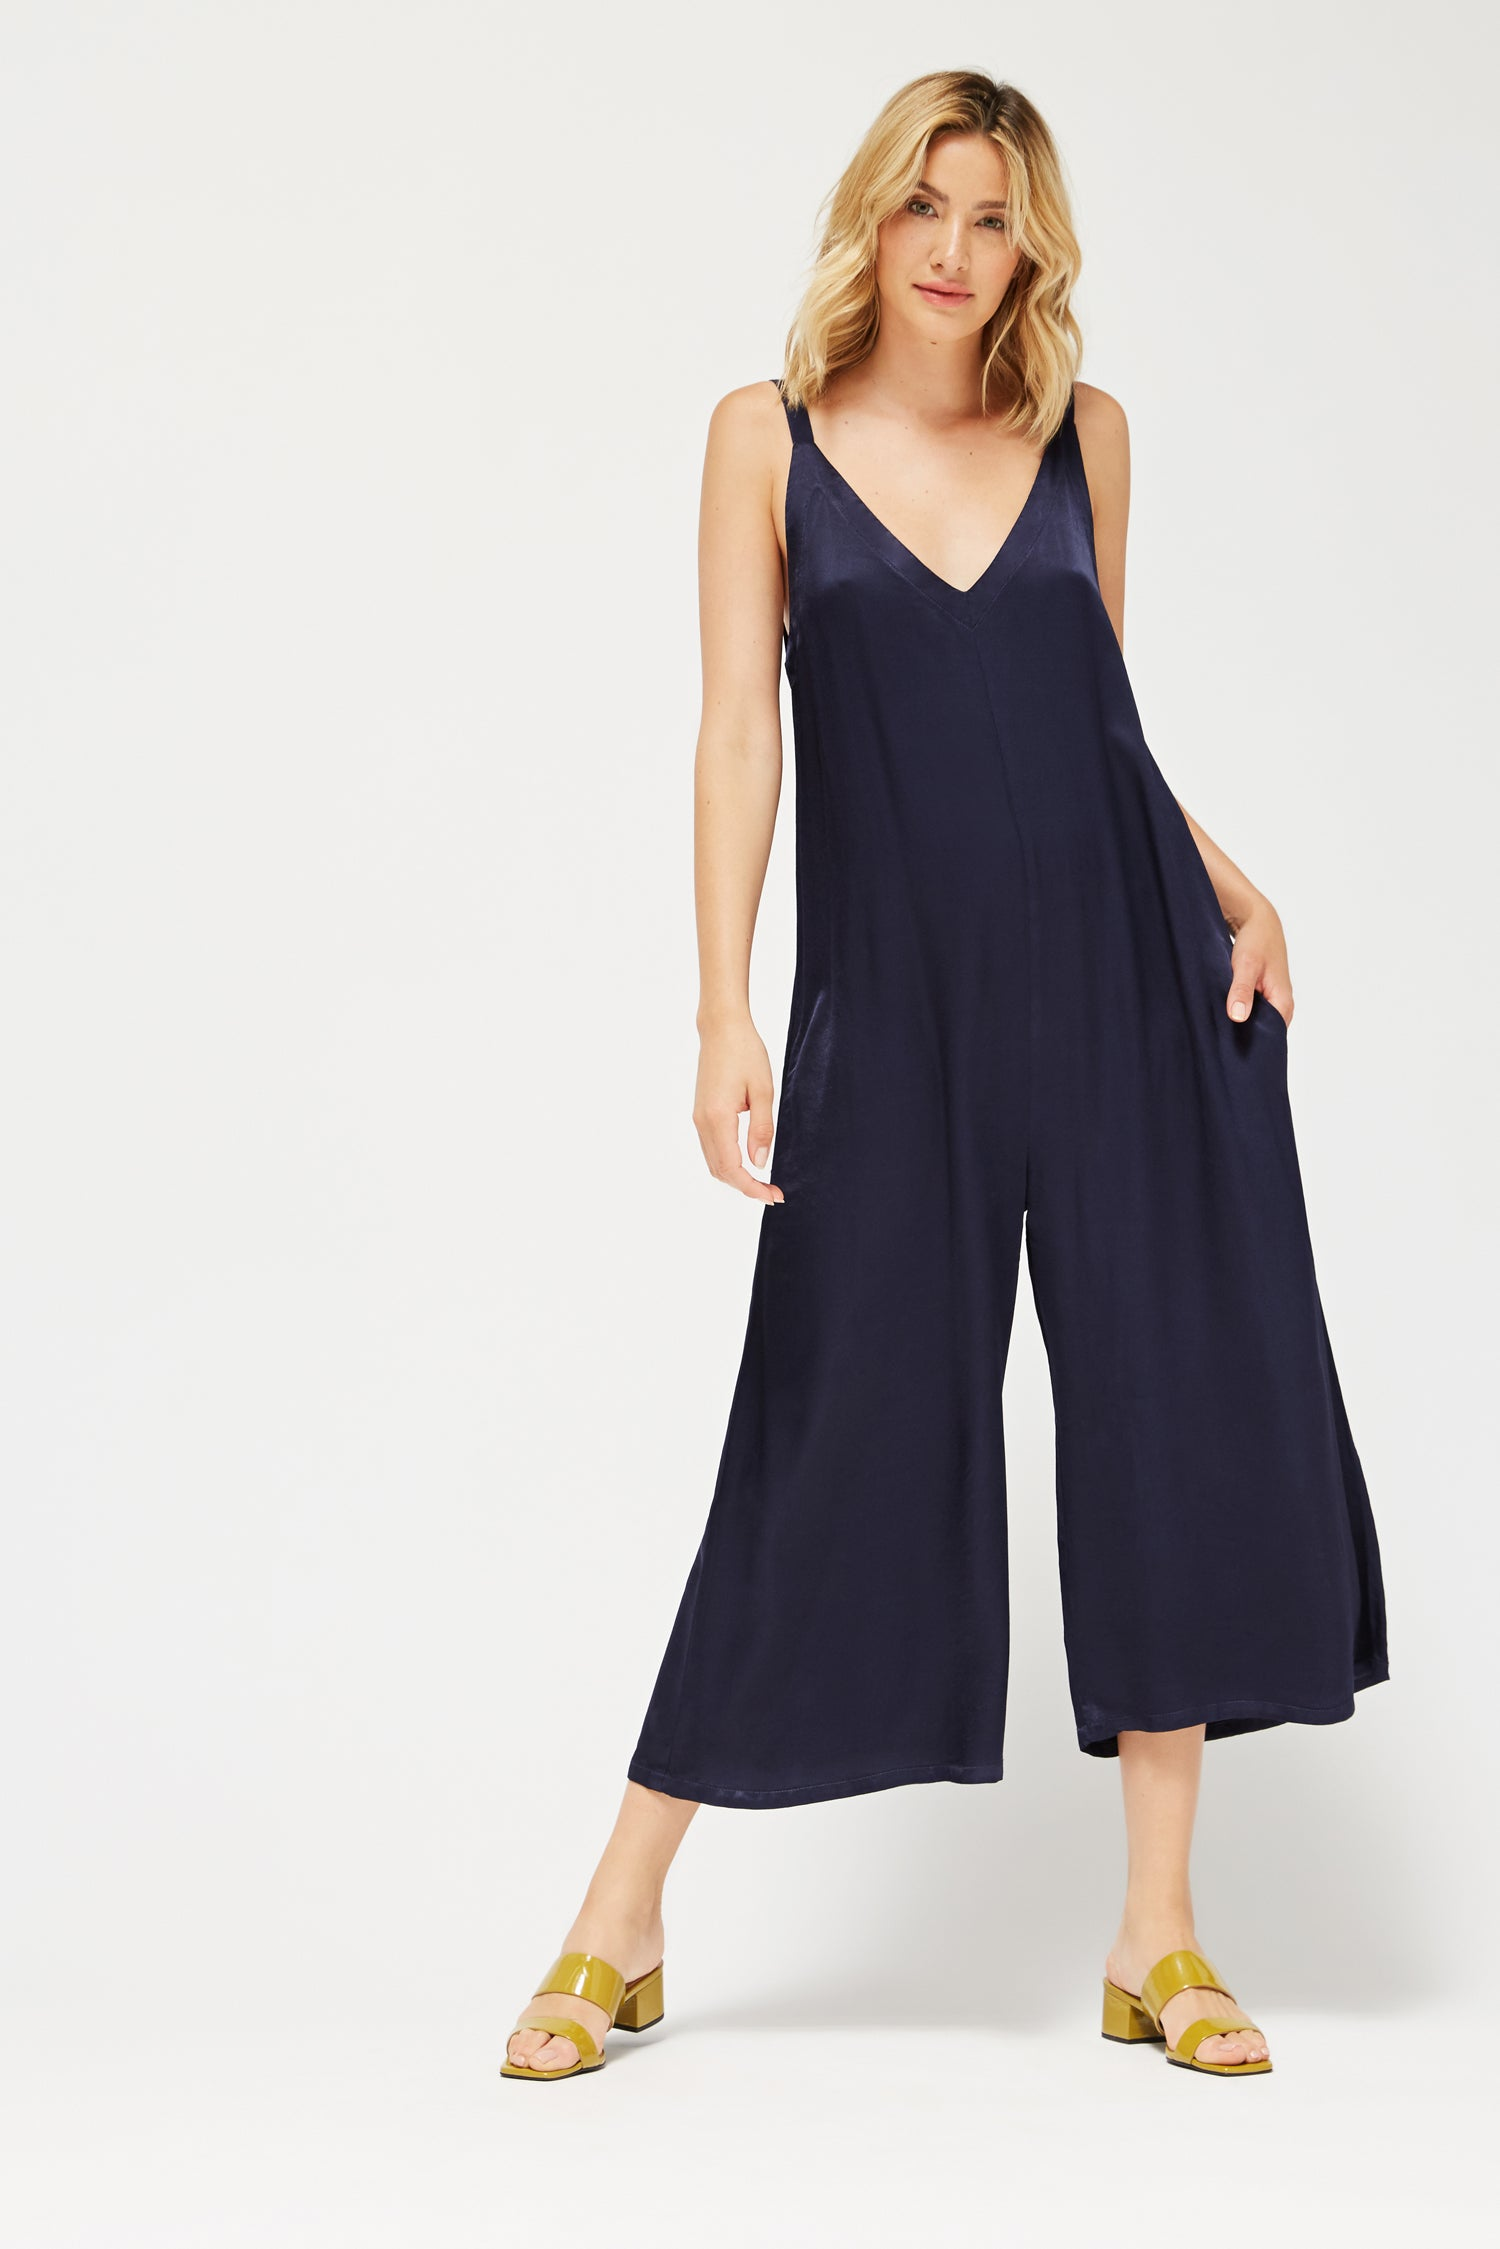 2c00d3dea5ac Jumpsuits - LACAUSA Clothing